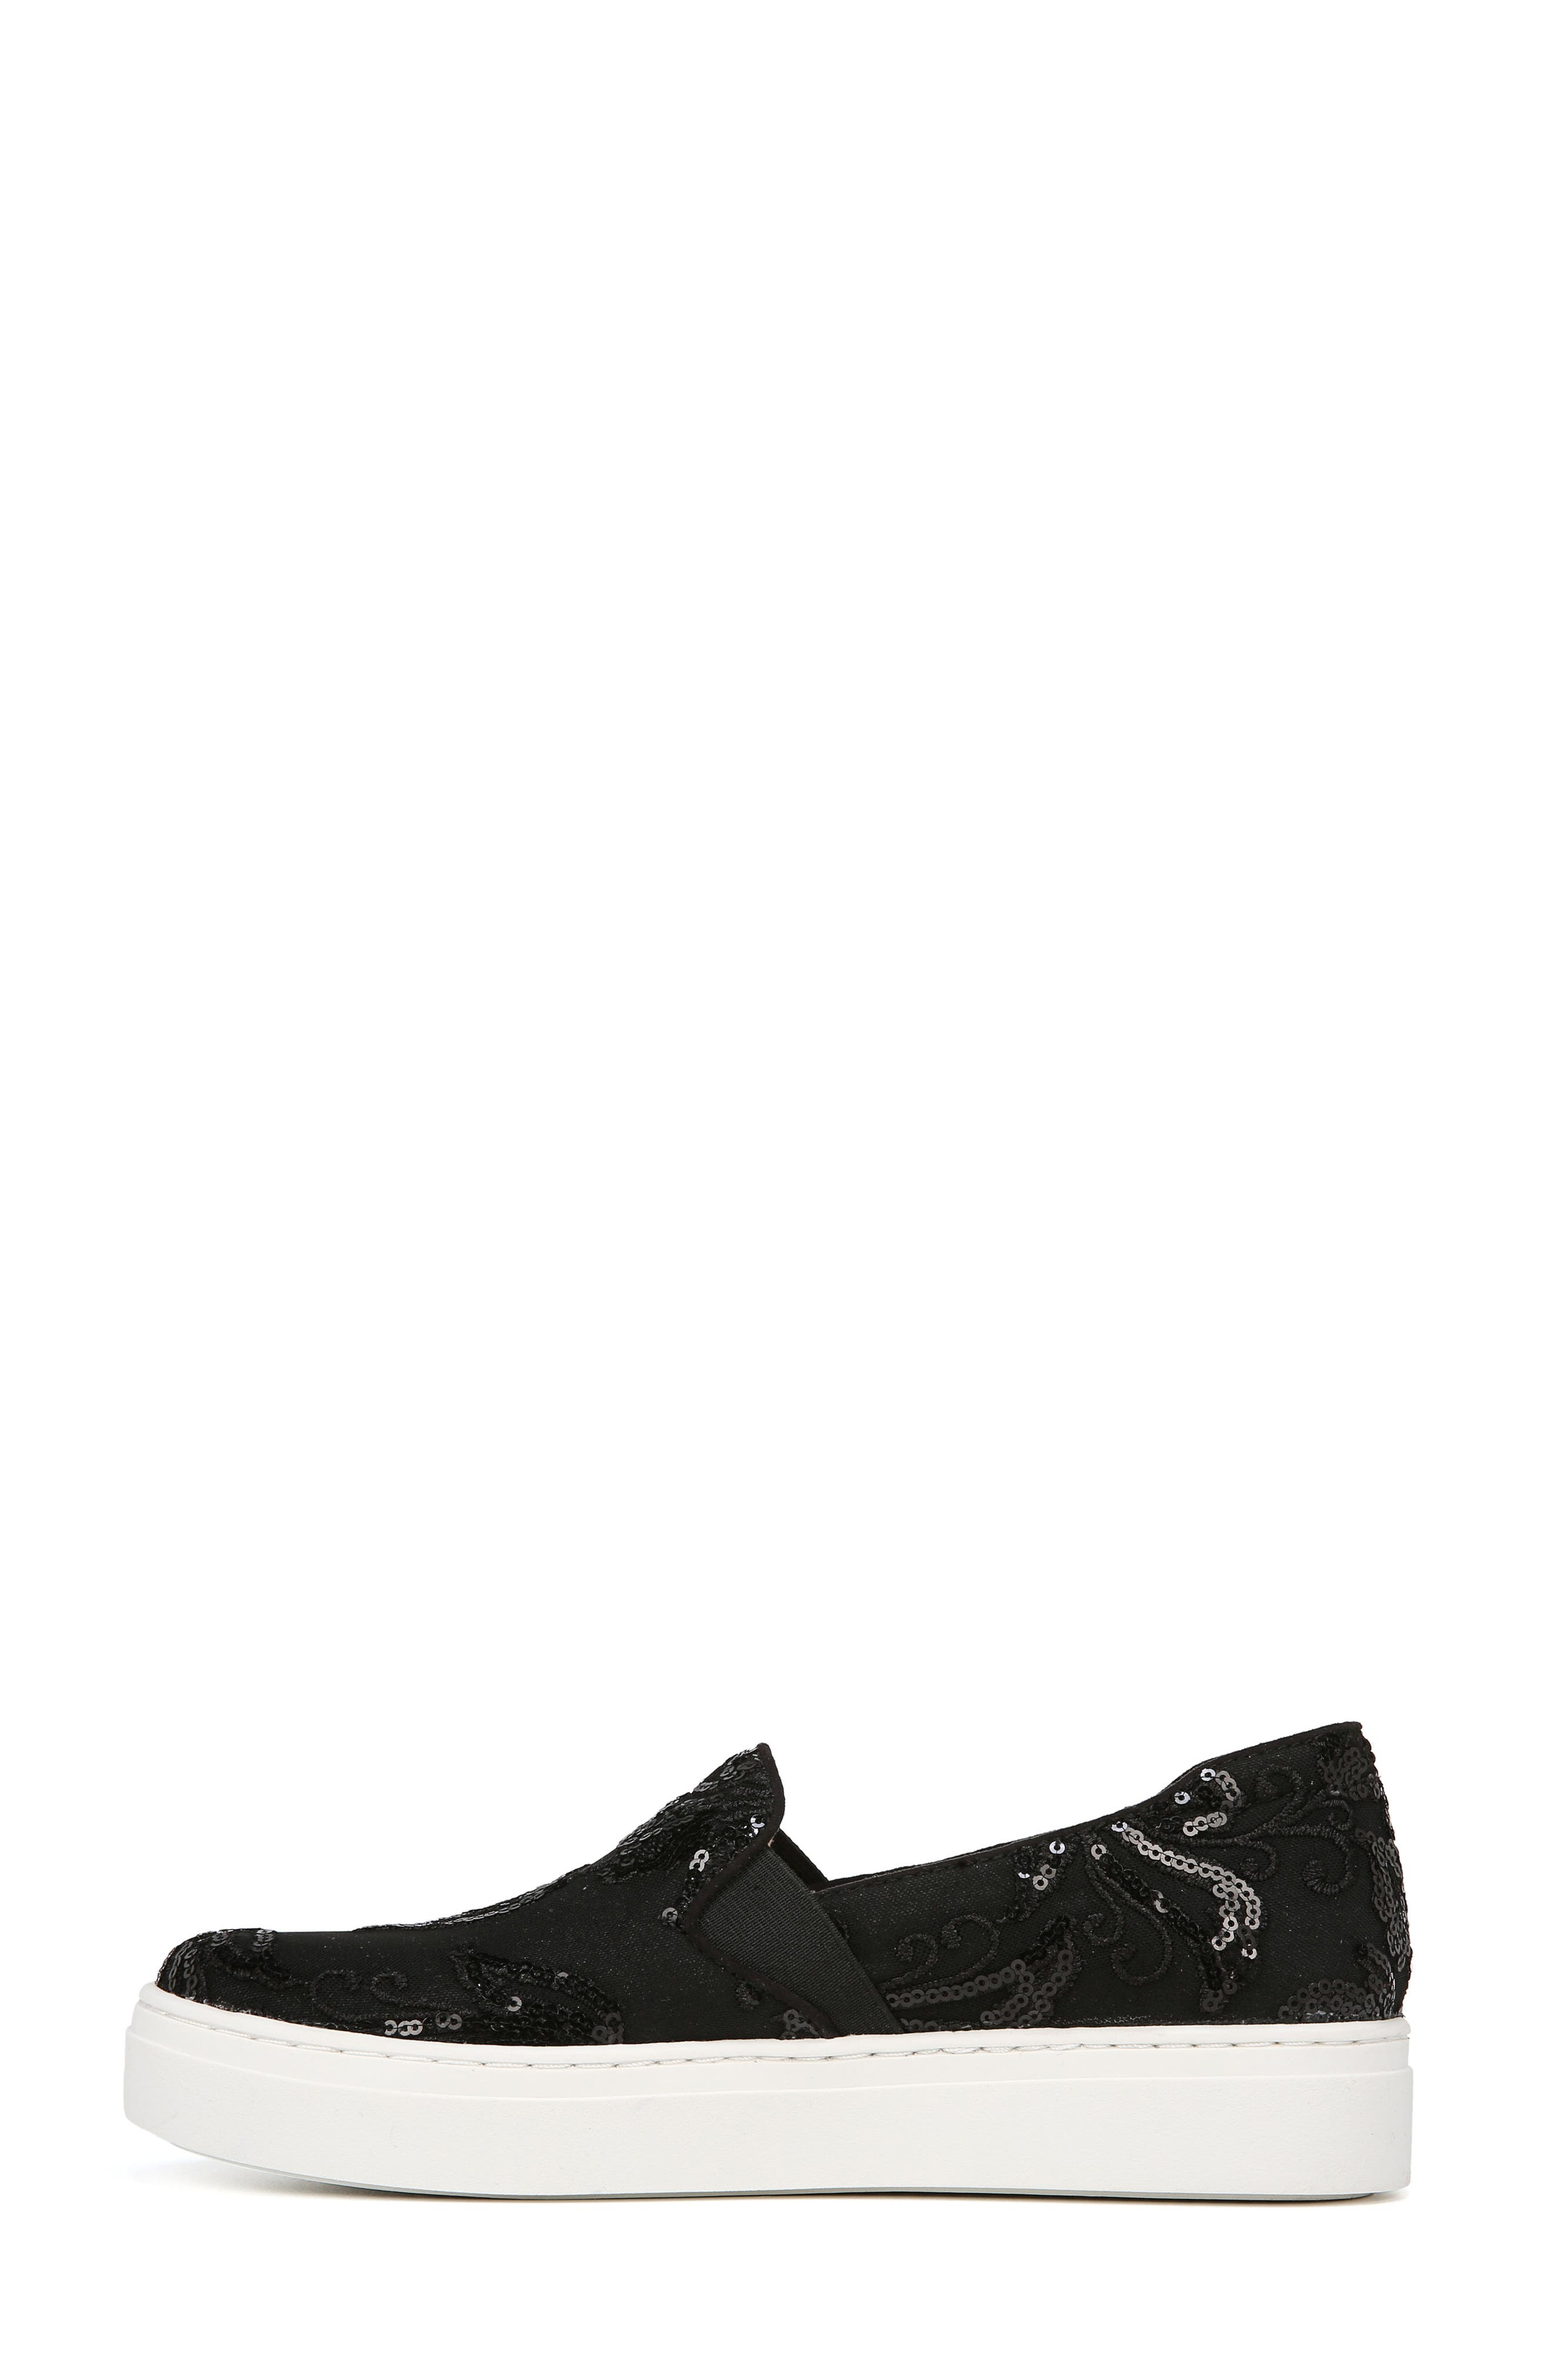 NATURALIZER, Carly Slip-On Sneaker, Alternate thumbnail 7, color, BLACK EMBROIDERED LACE